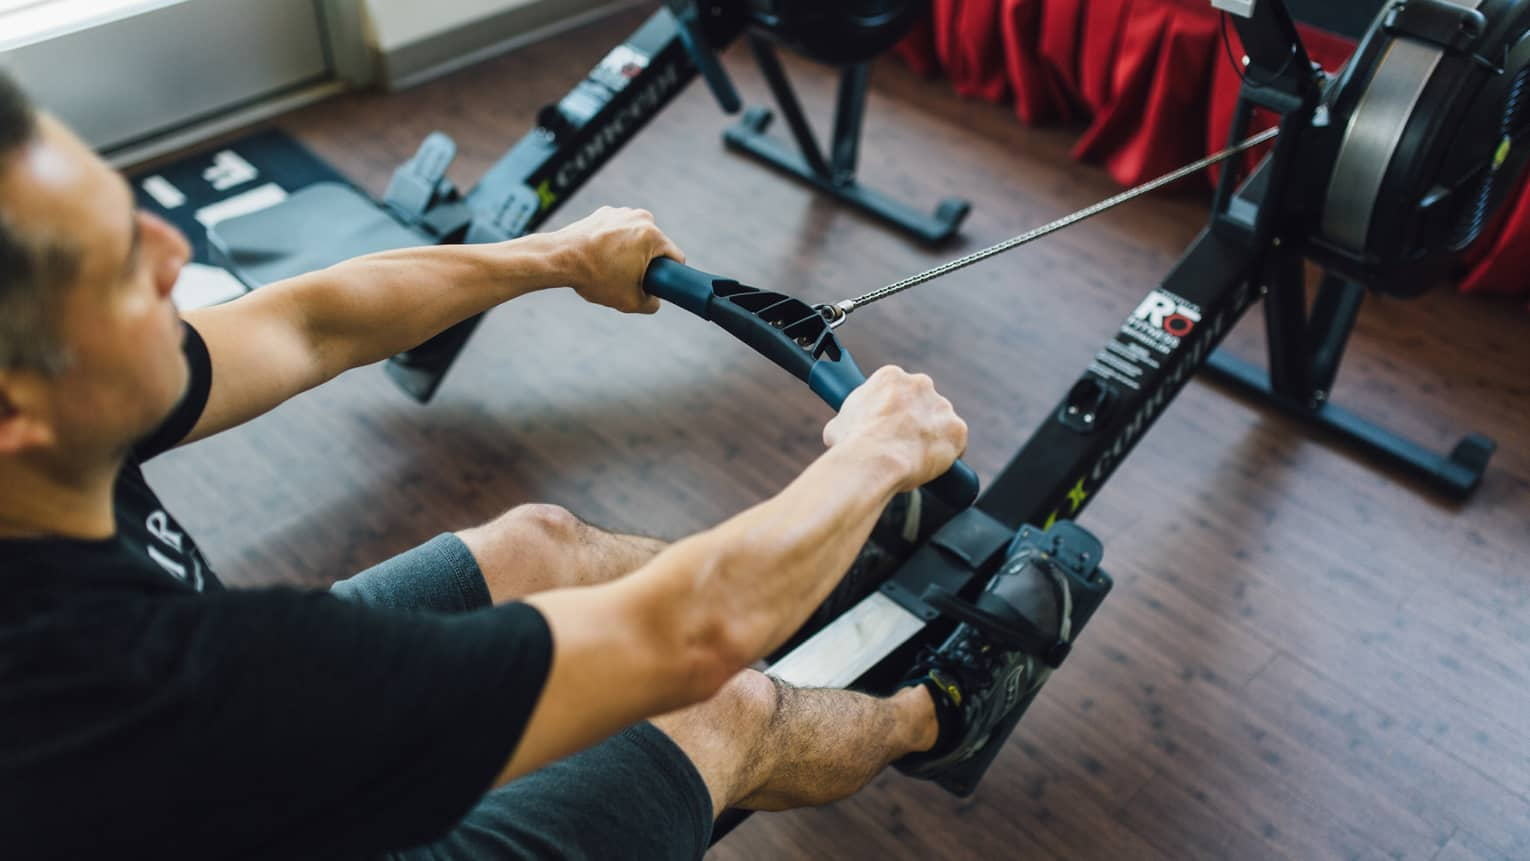 Man sits, pulls handle of cardio rowing machine in fitness facility